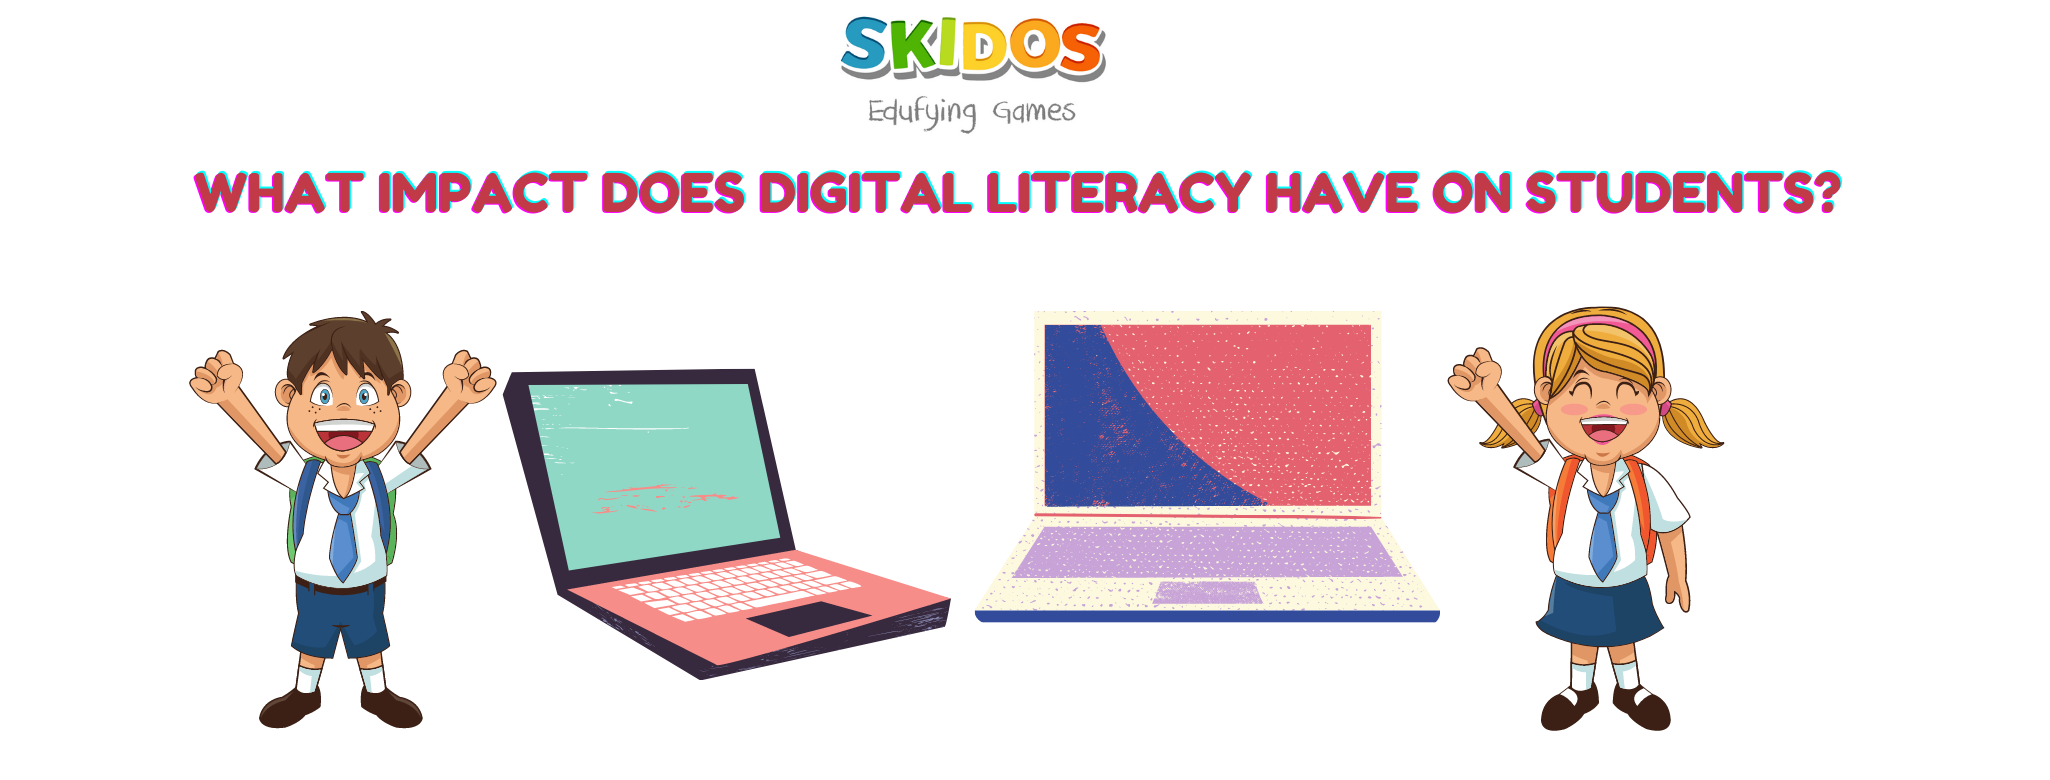 Digital literacy have on students